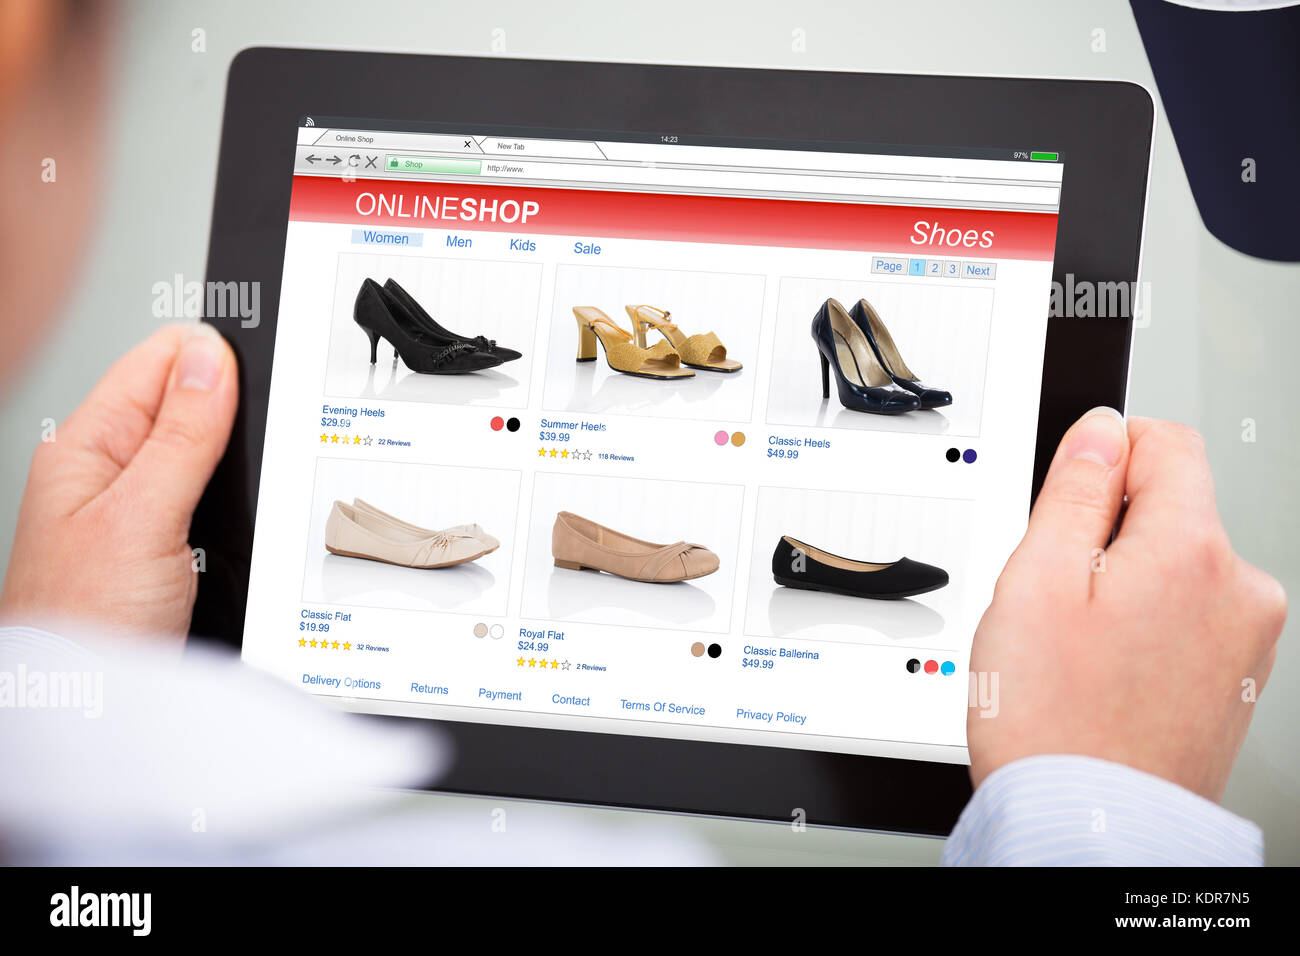 hand shoes sale on market stock photos hand shoes sale on market stock images alamy. Black Bedroom Furniture Sets. Home Design Ideas